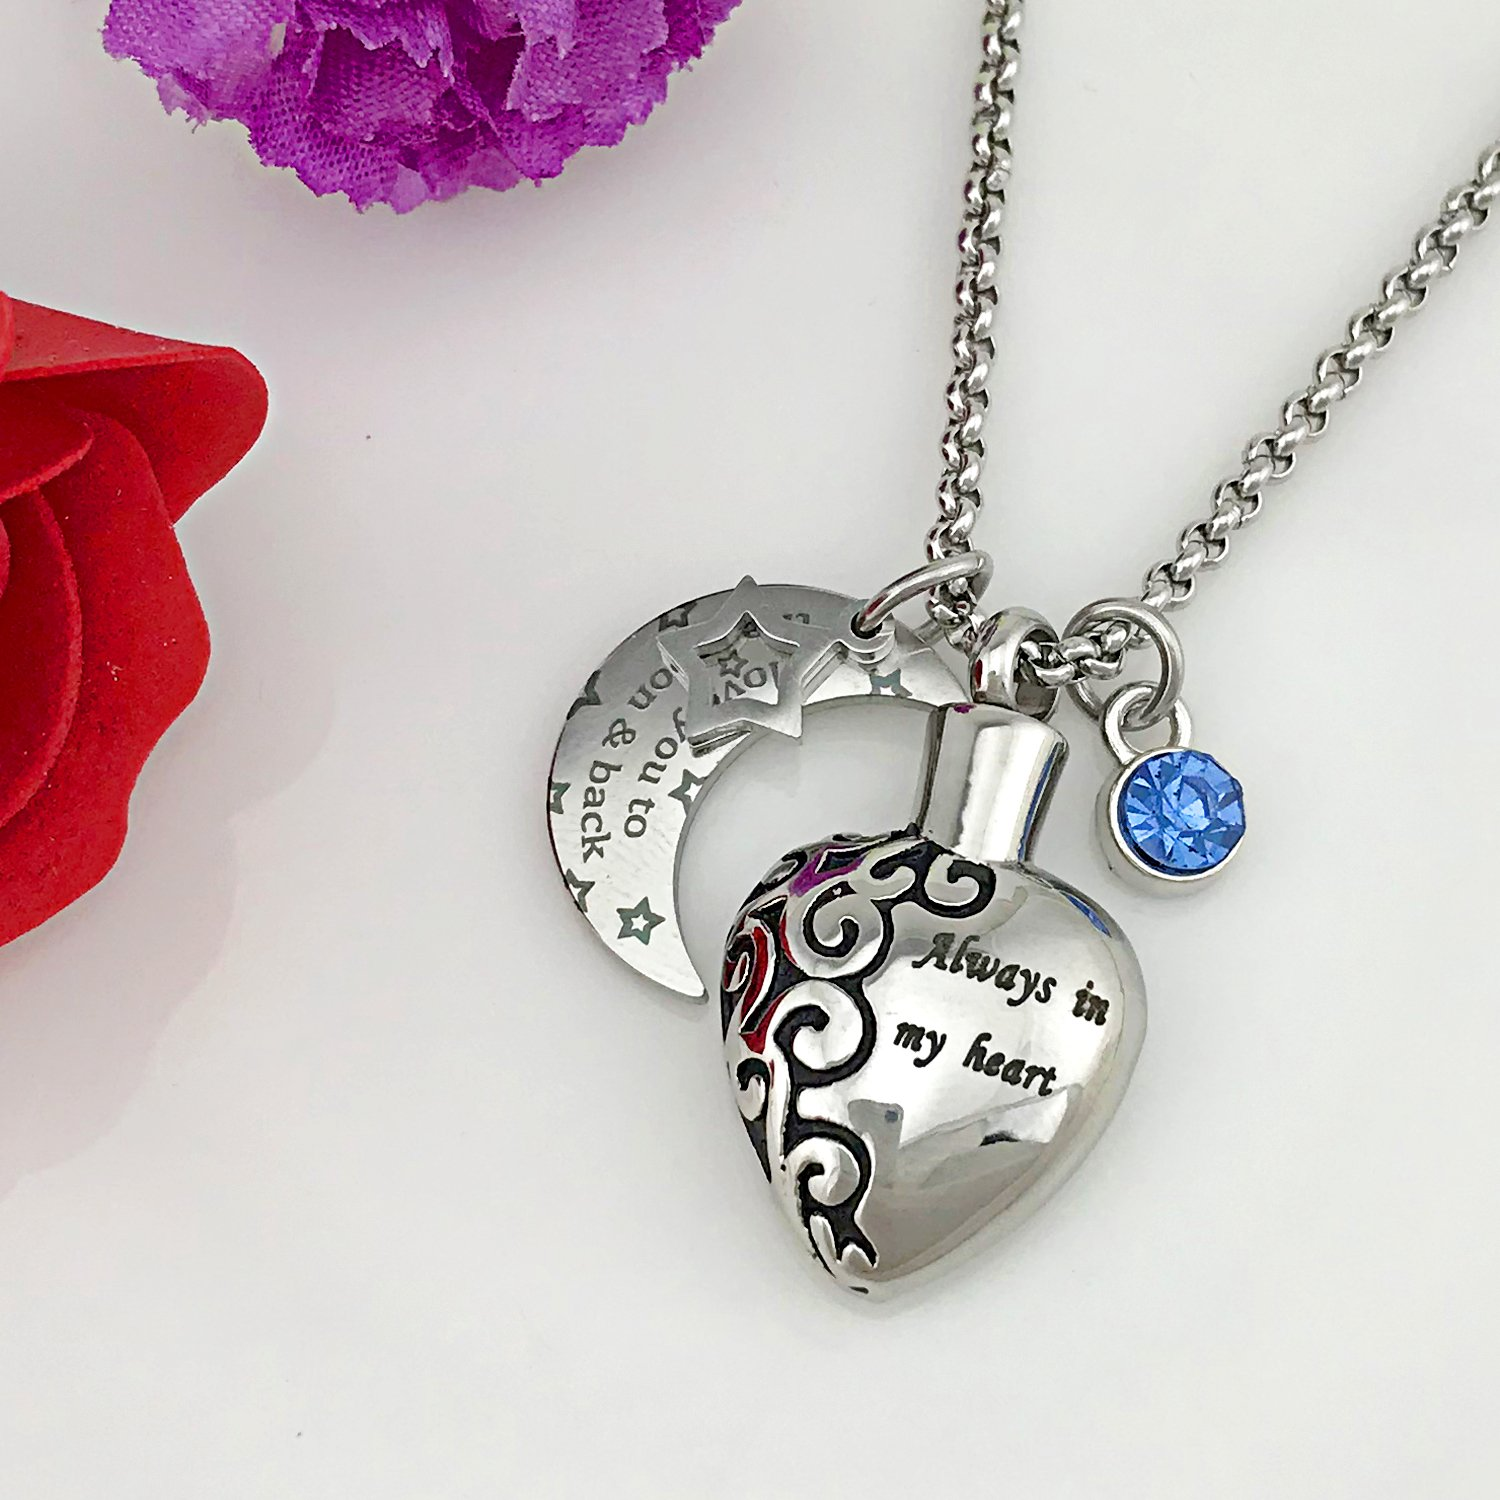 YOUFENG Urn Necklaces for Ashes Always in My Heart Love You to The Moon and Back 12 Birthstones Styles Necklace (December Birthstone URN Necklace) by YOUFENG (Image #2)